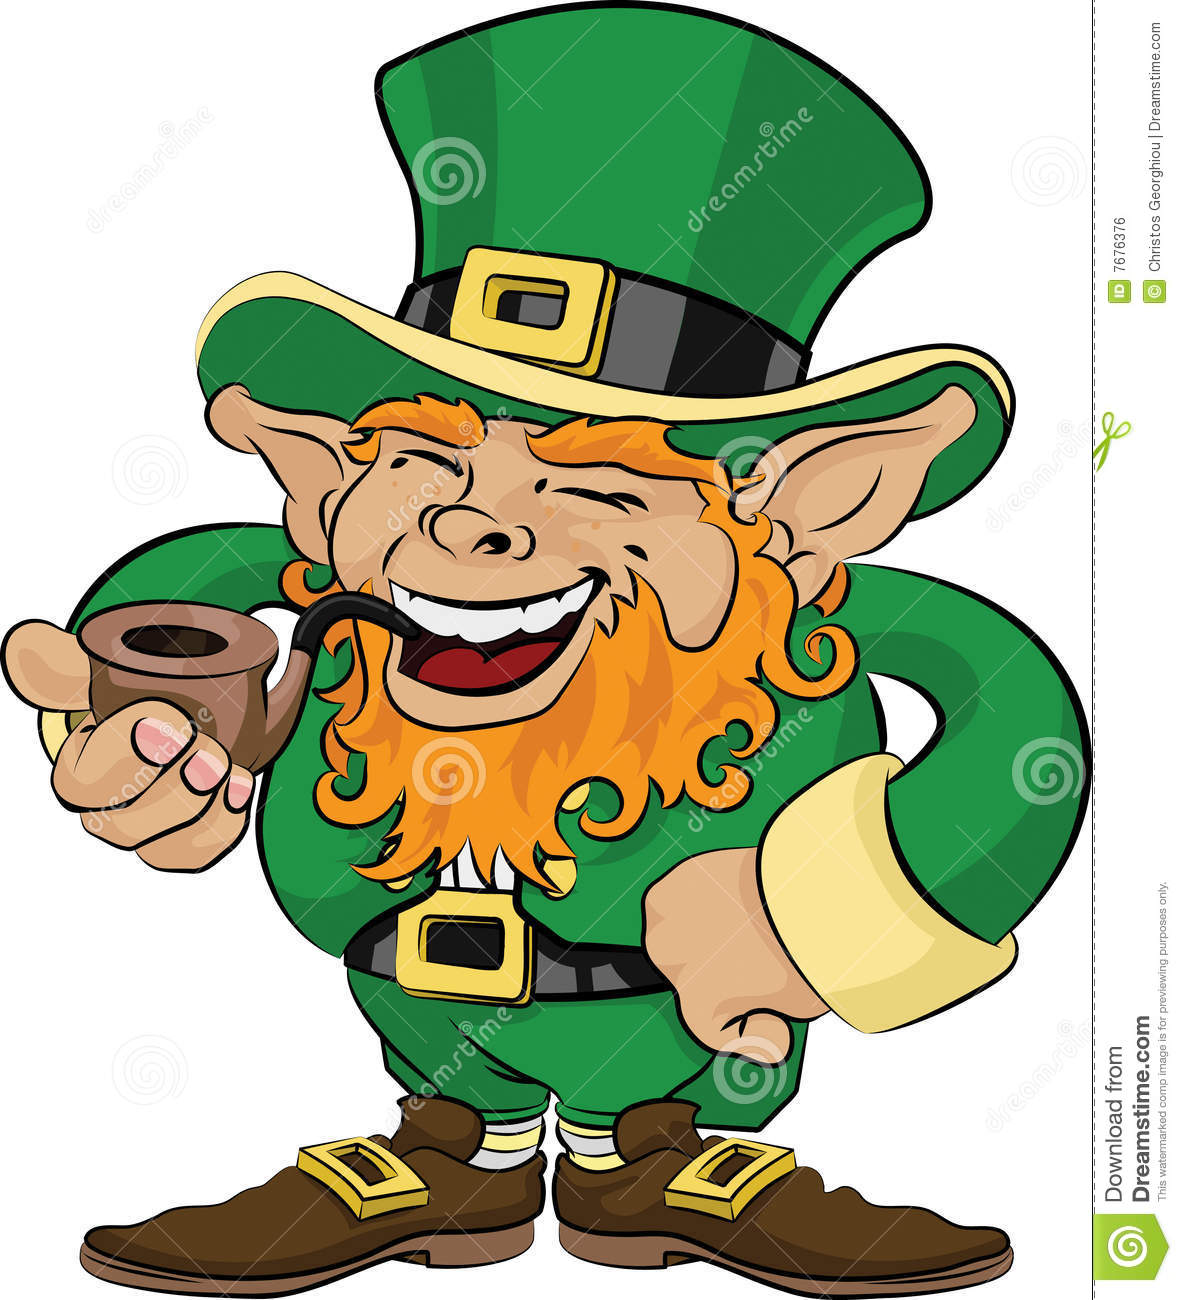 Illustration Of St. Patrick's Day Leprechaun Royalty Free Stock Image ...